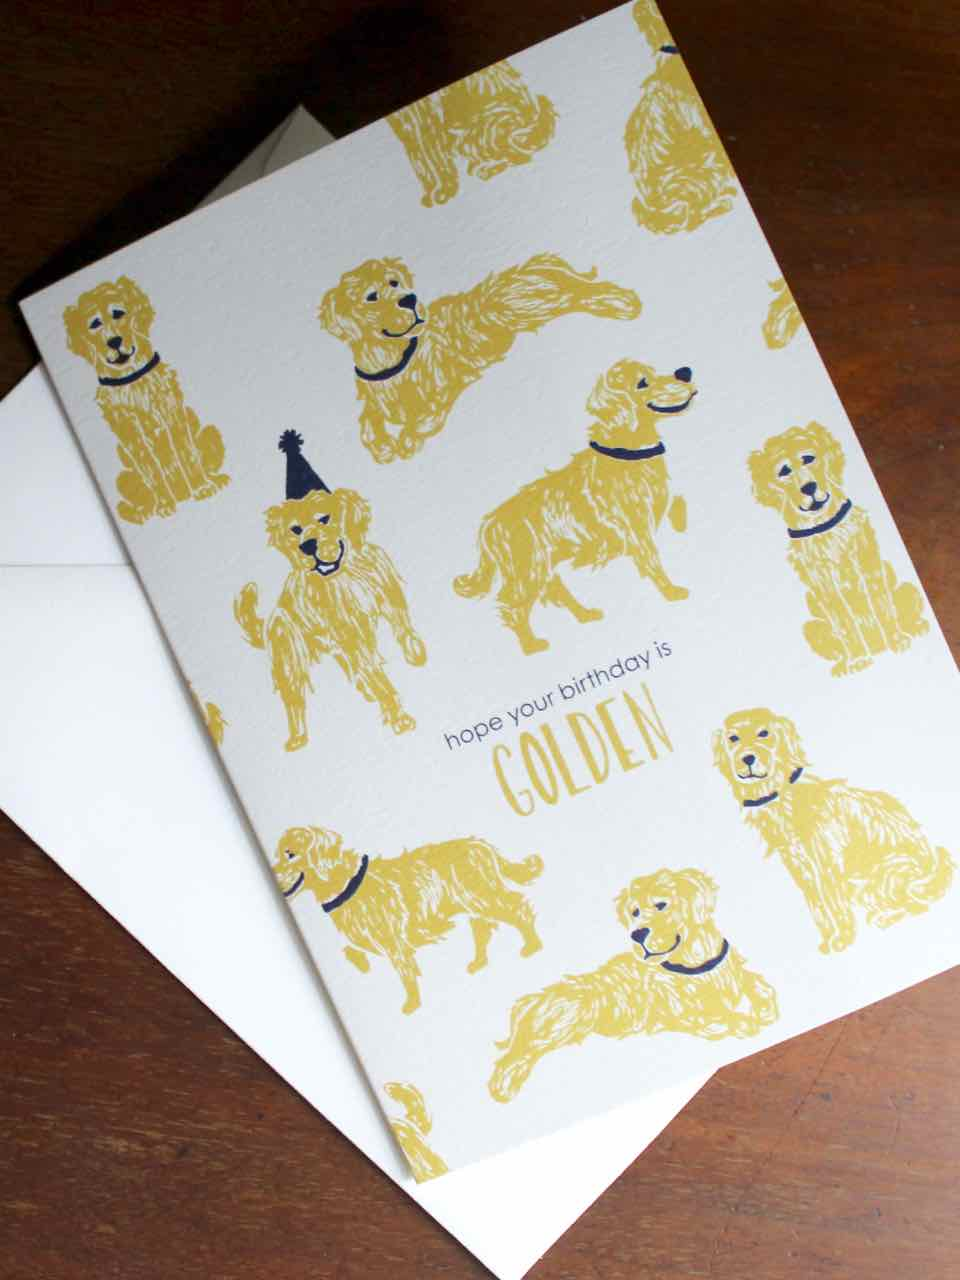 Papier Birthday Card designed by Smudge Ink